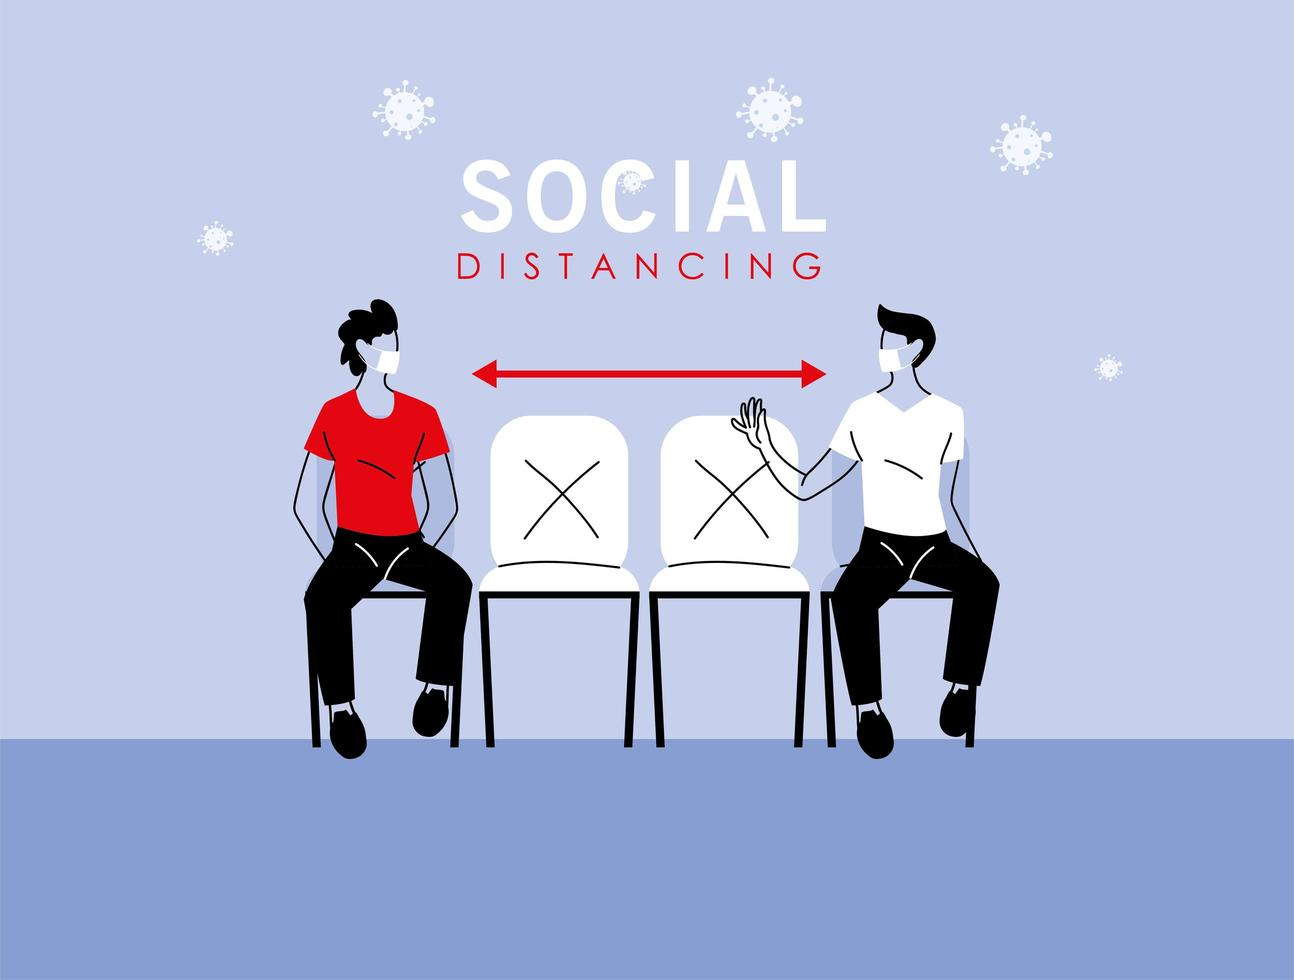 Social distancing between men with masks on chairs vector